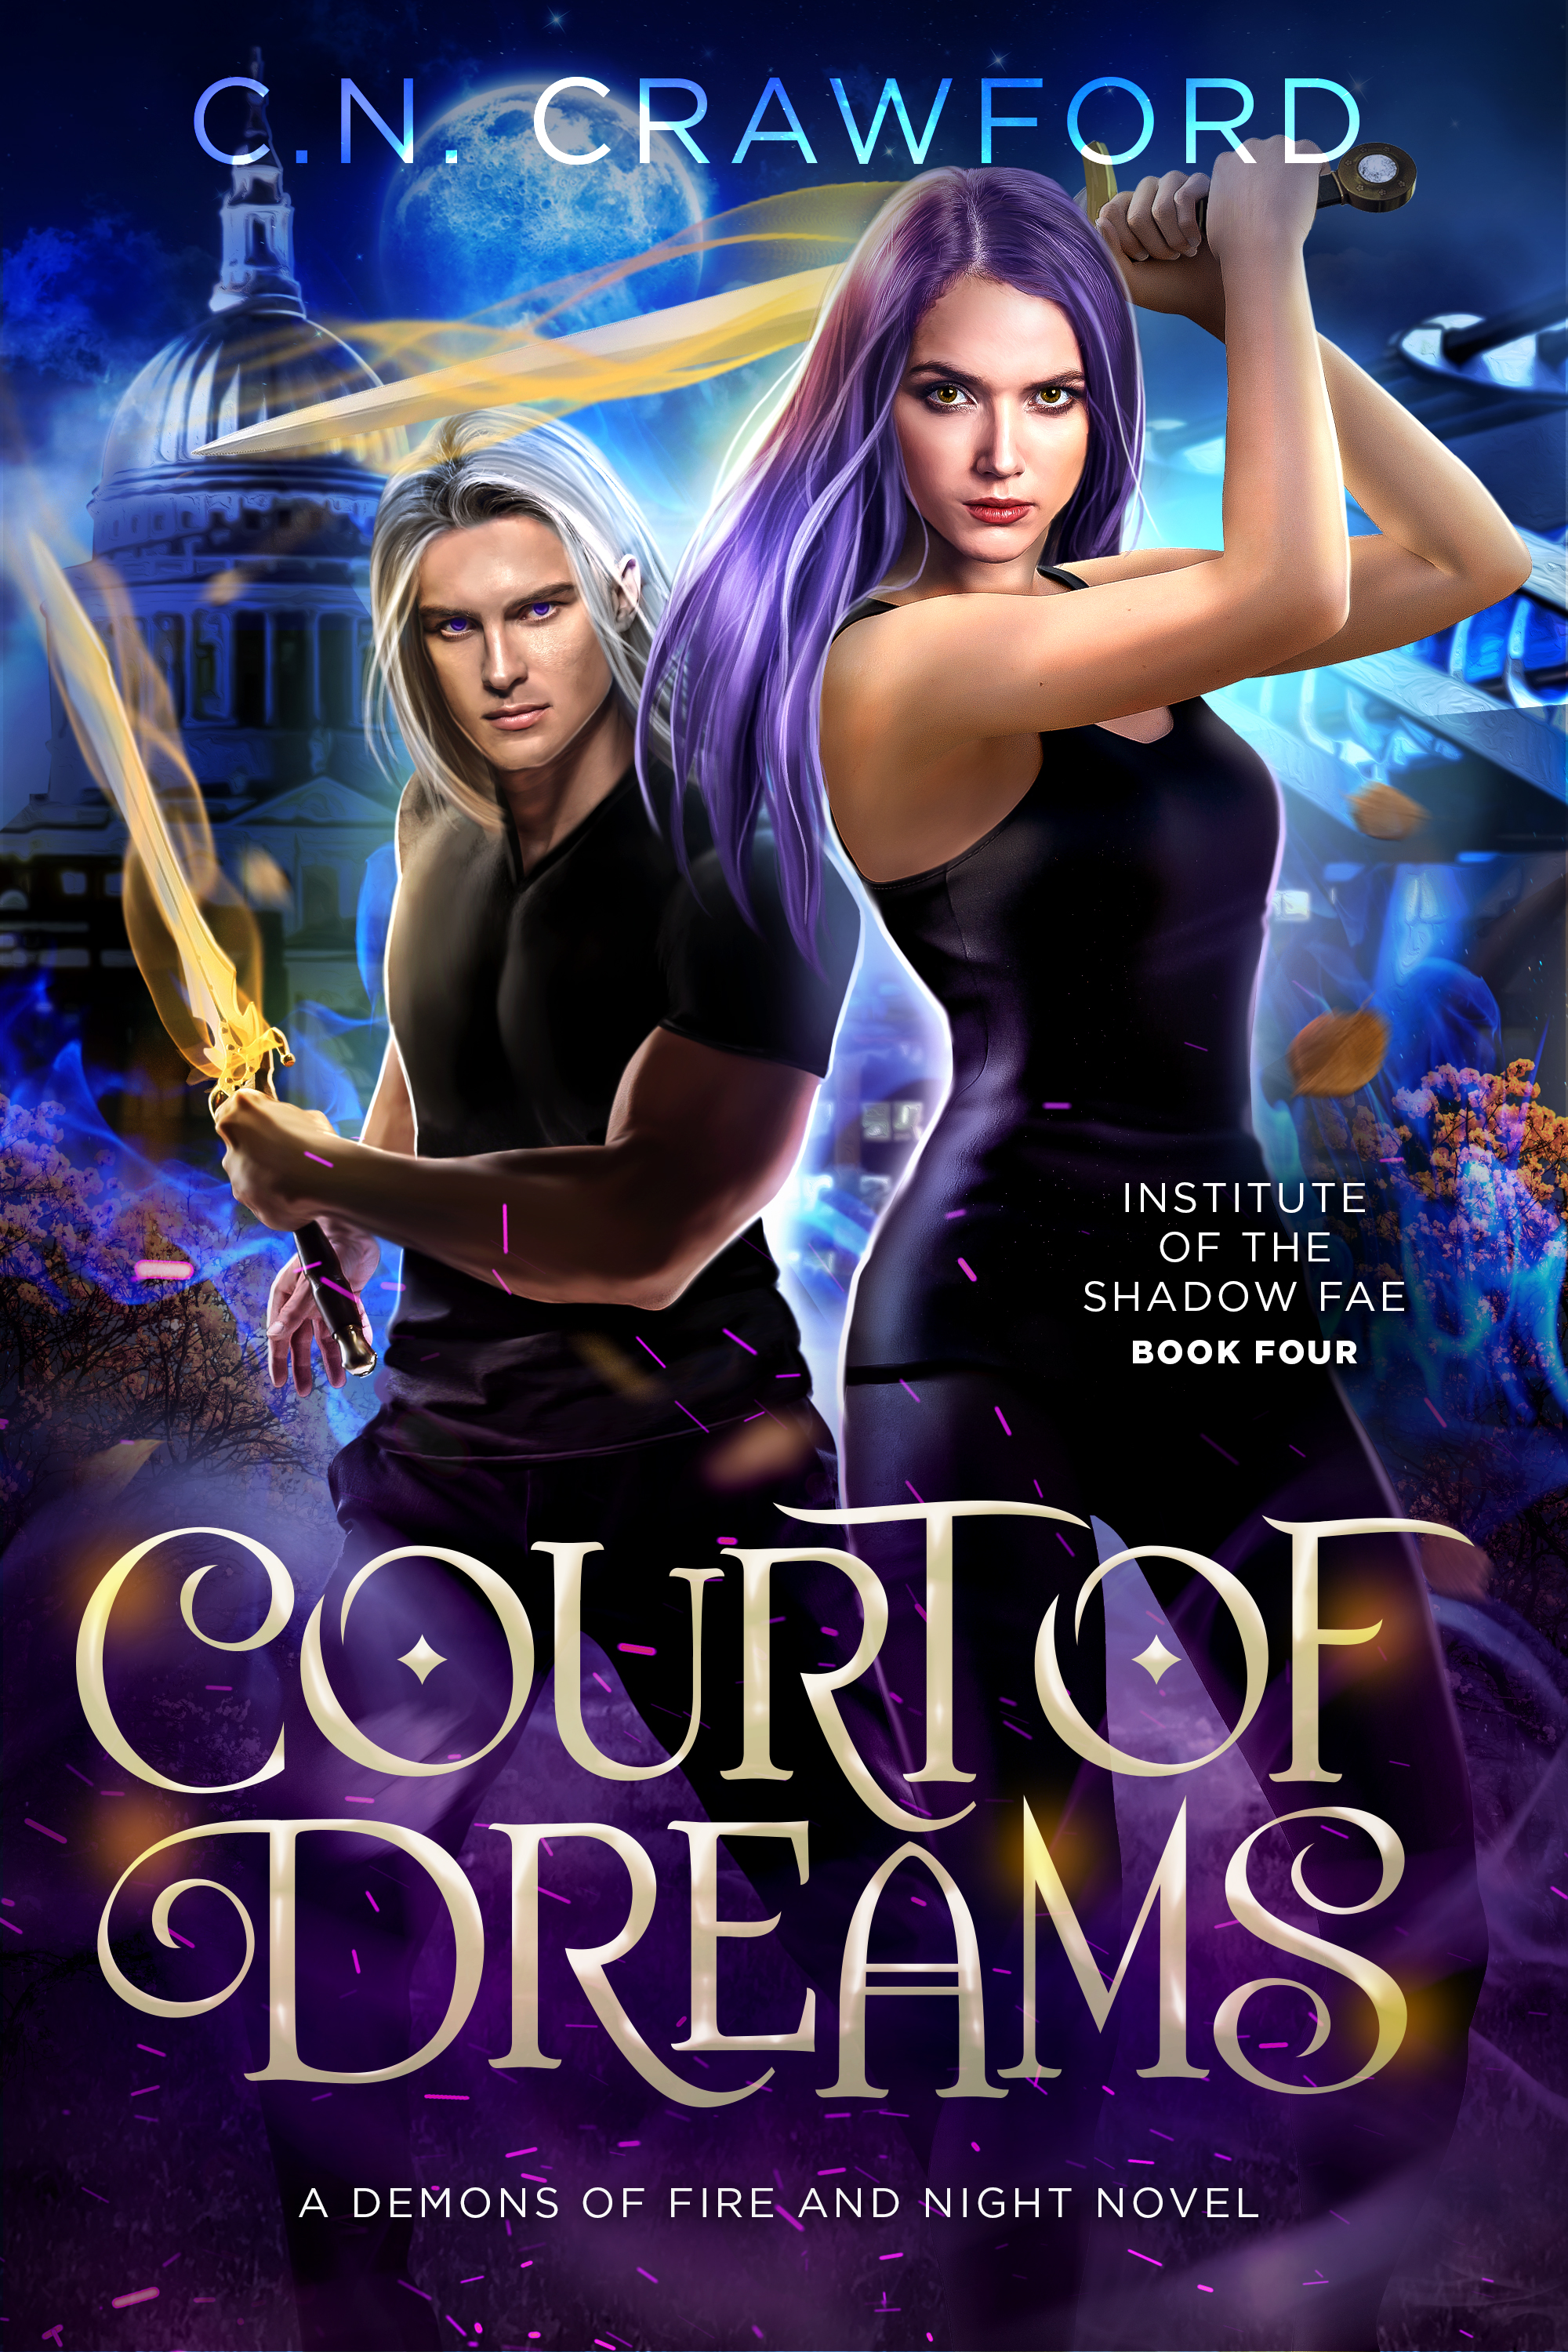 Book 4: Court of Dreams